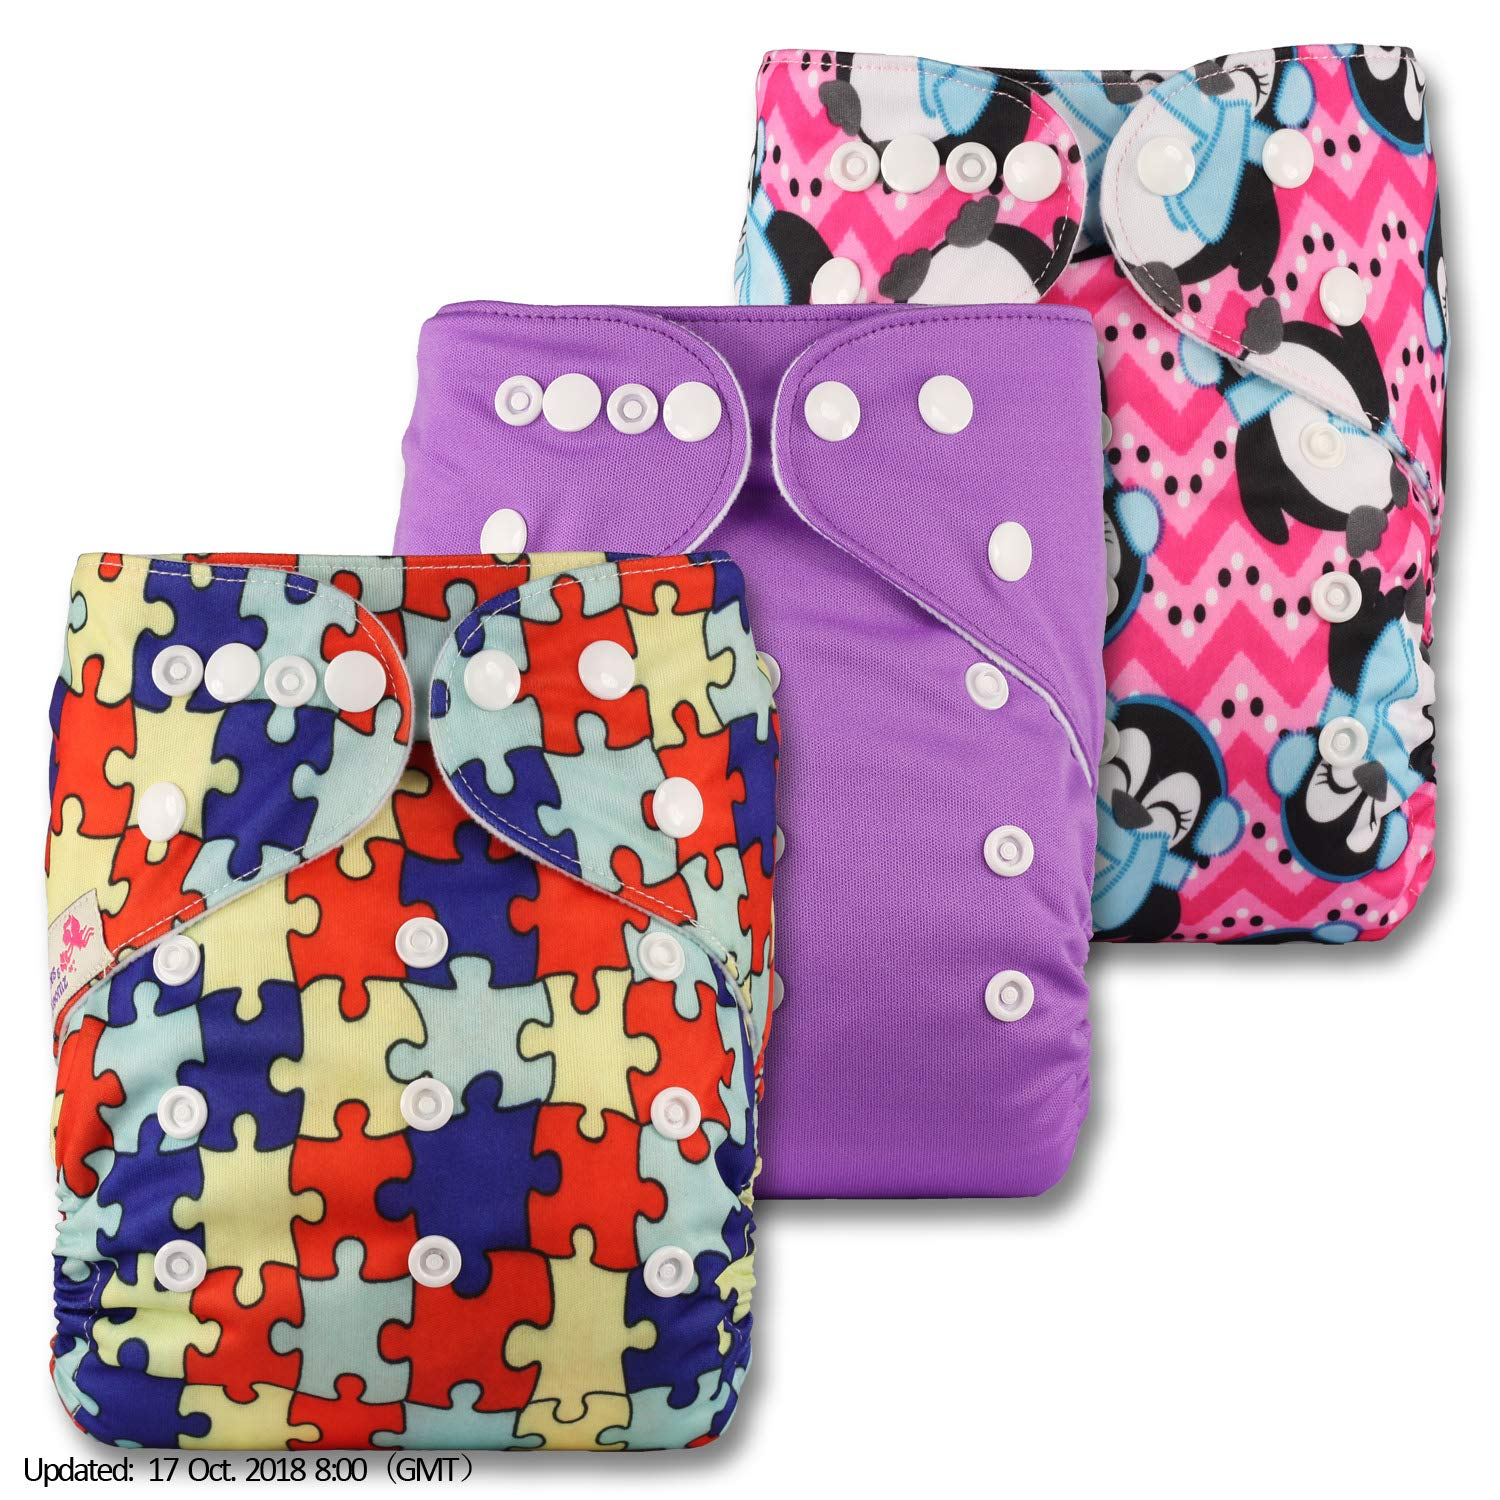 Without Insert Fastener: Popper Set of 3 Patterns 304 Reusable Pocket Cloth Nappy Littles /& Bloomz